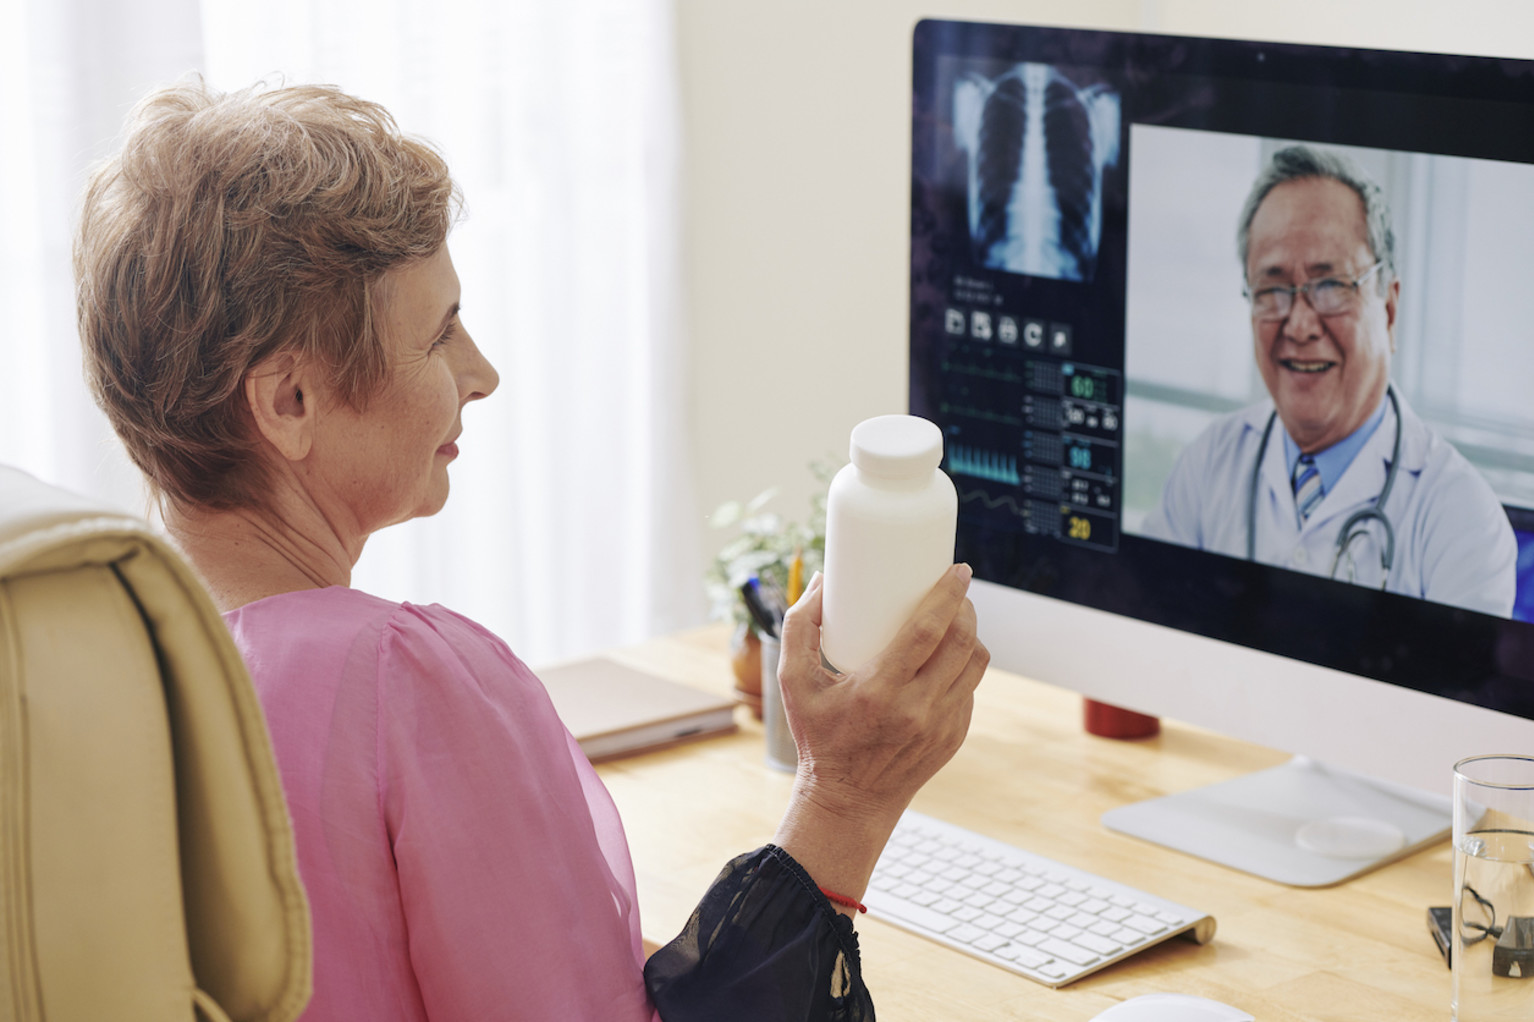 Patient Management in the Era of Telemedicine